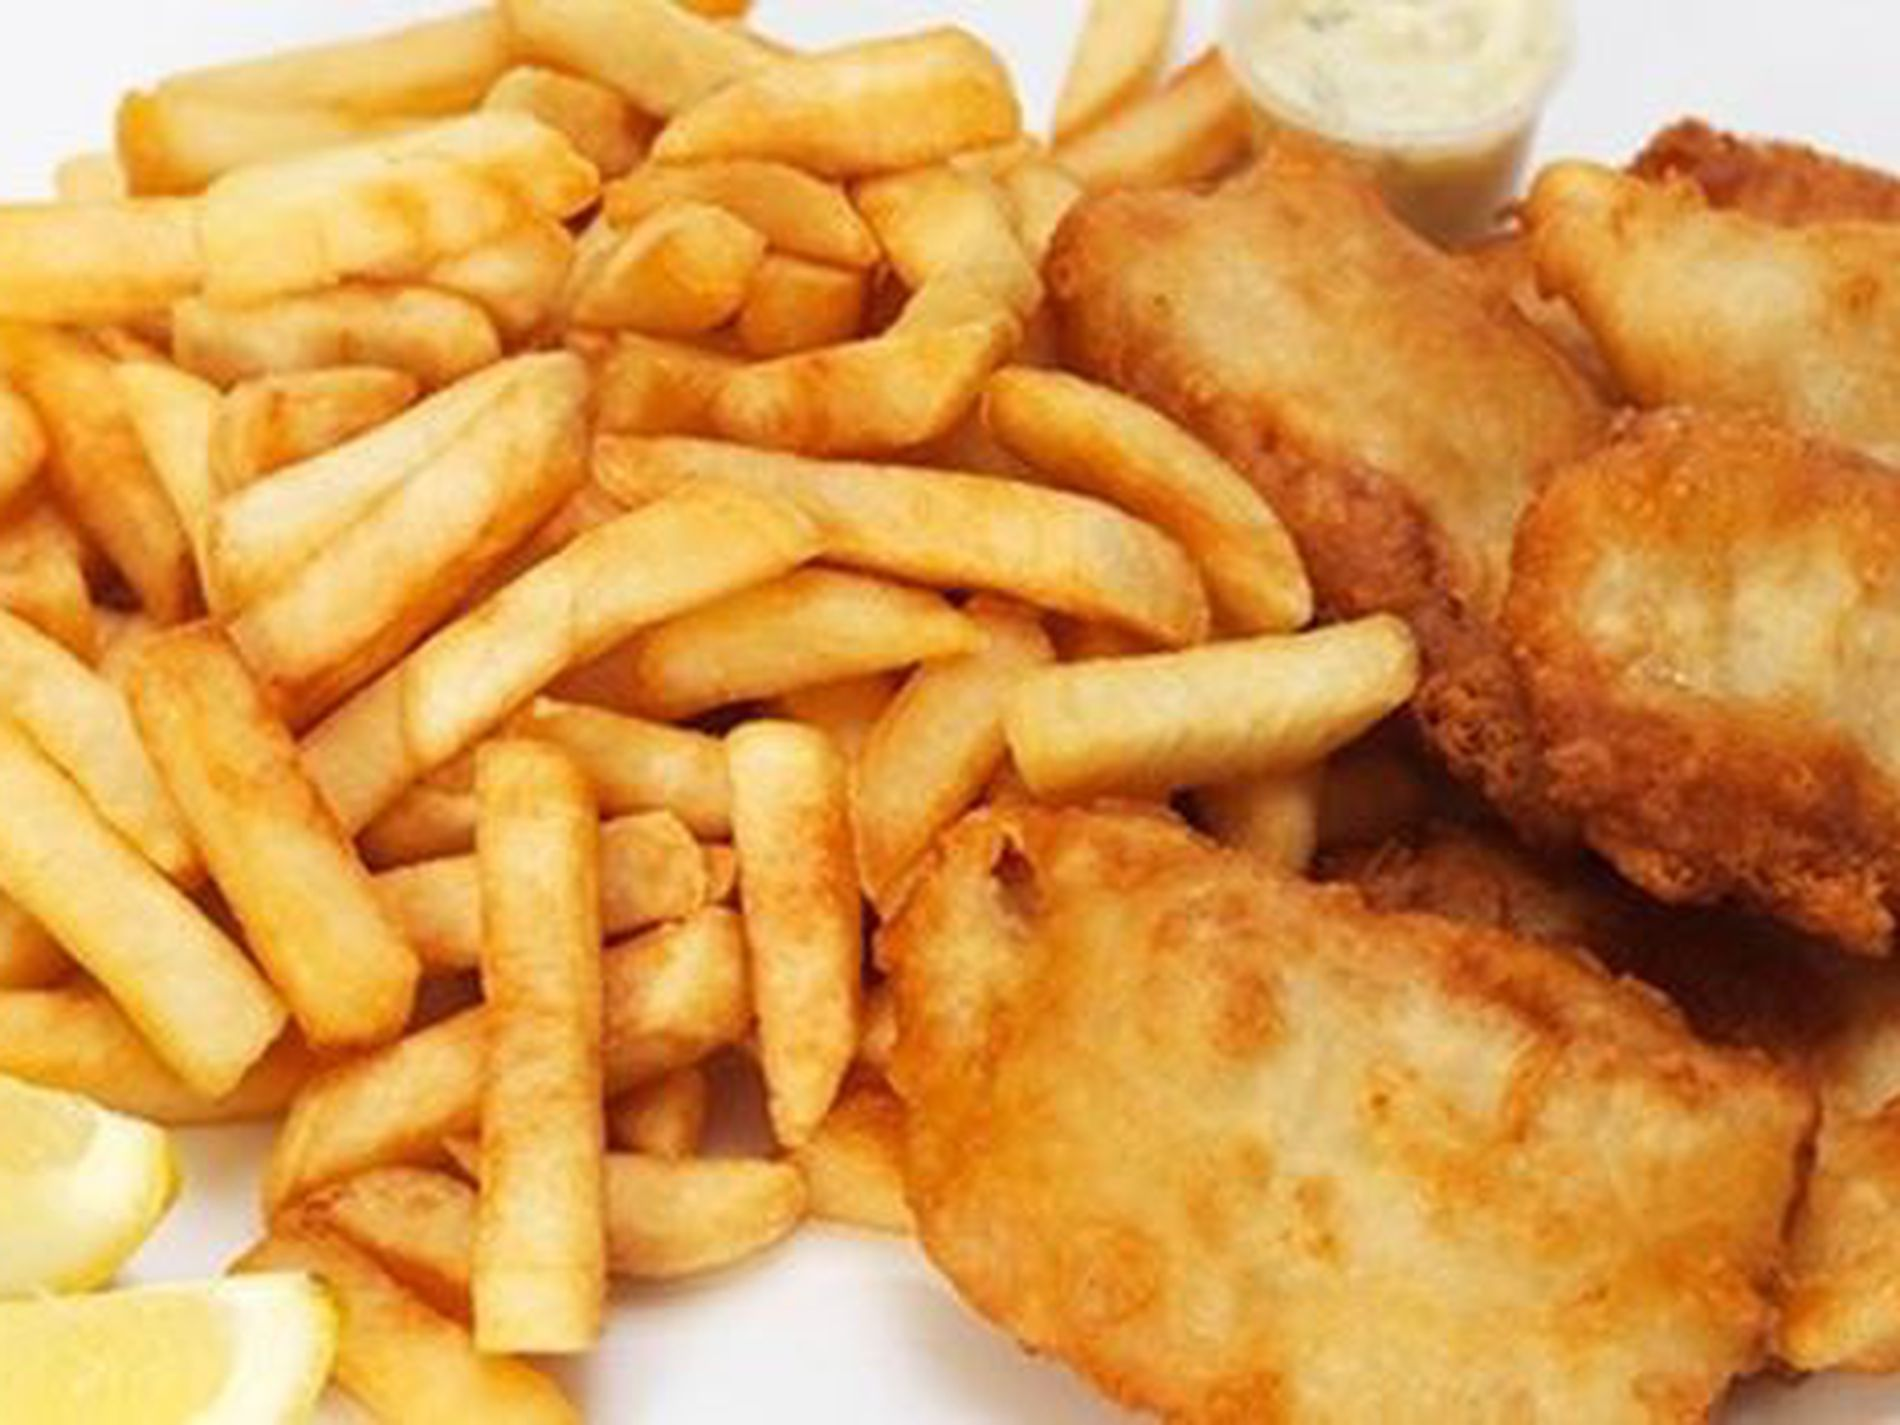 Immaculate Fish and chips Takeaway for Sale